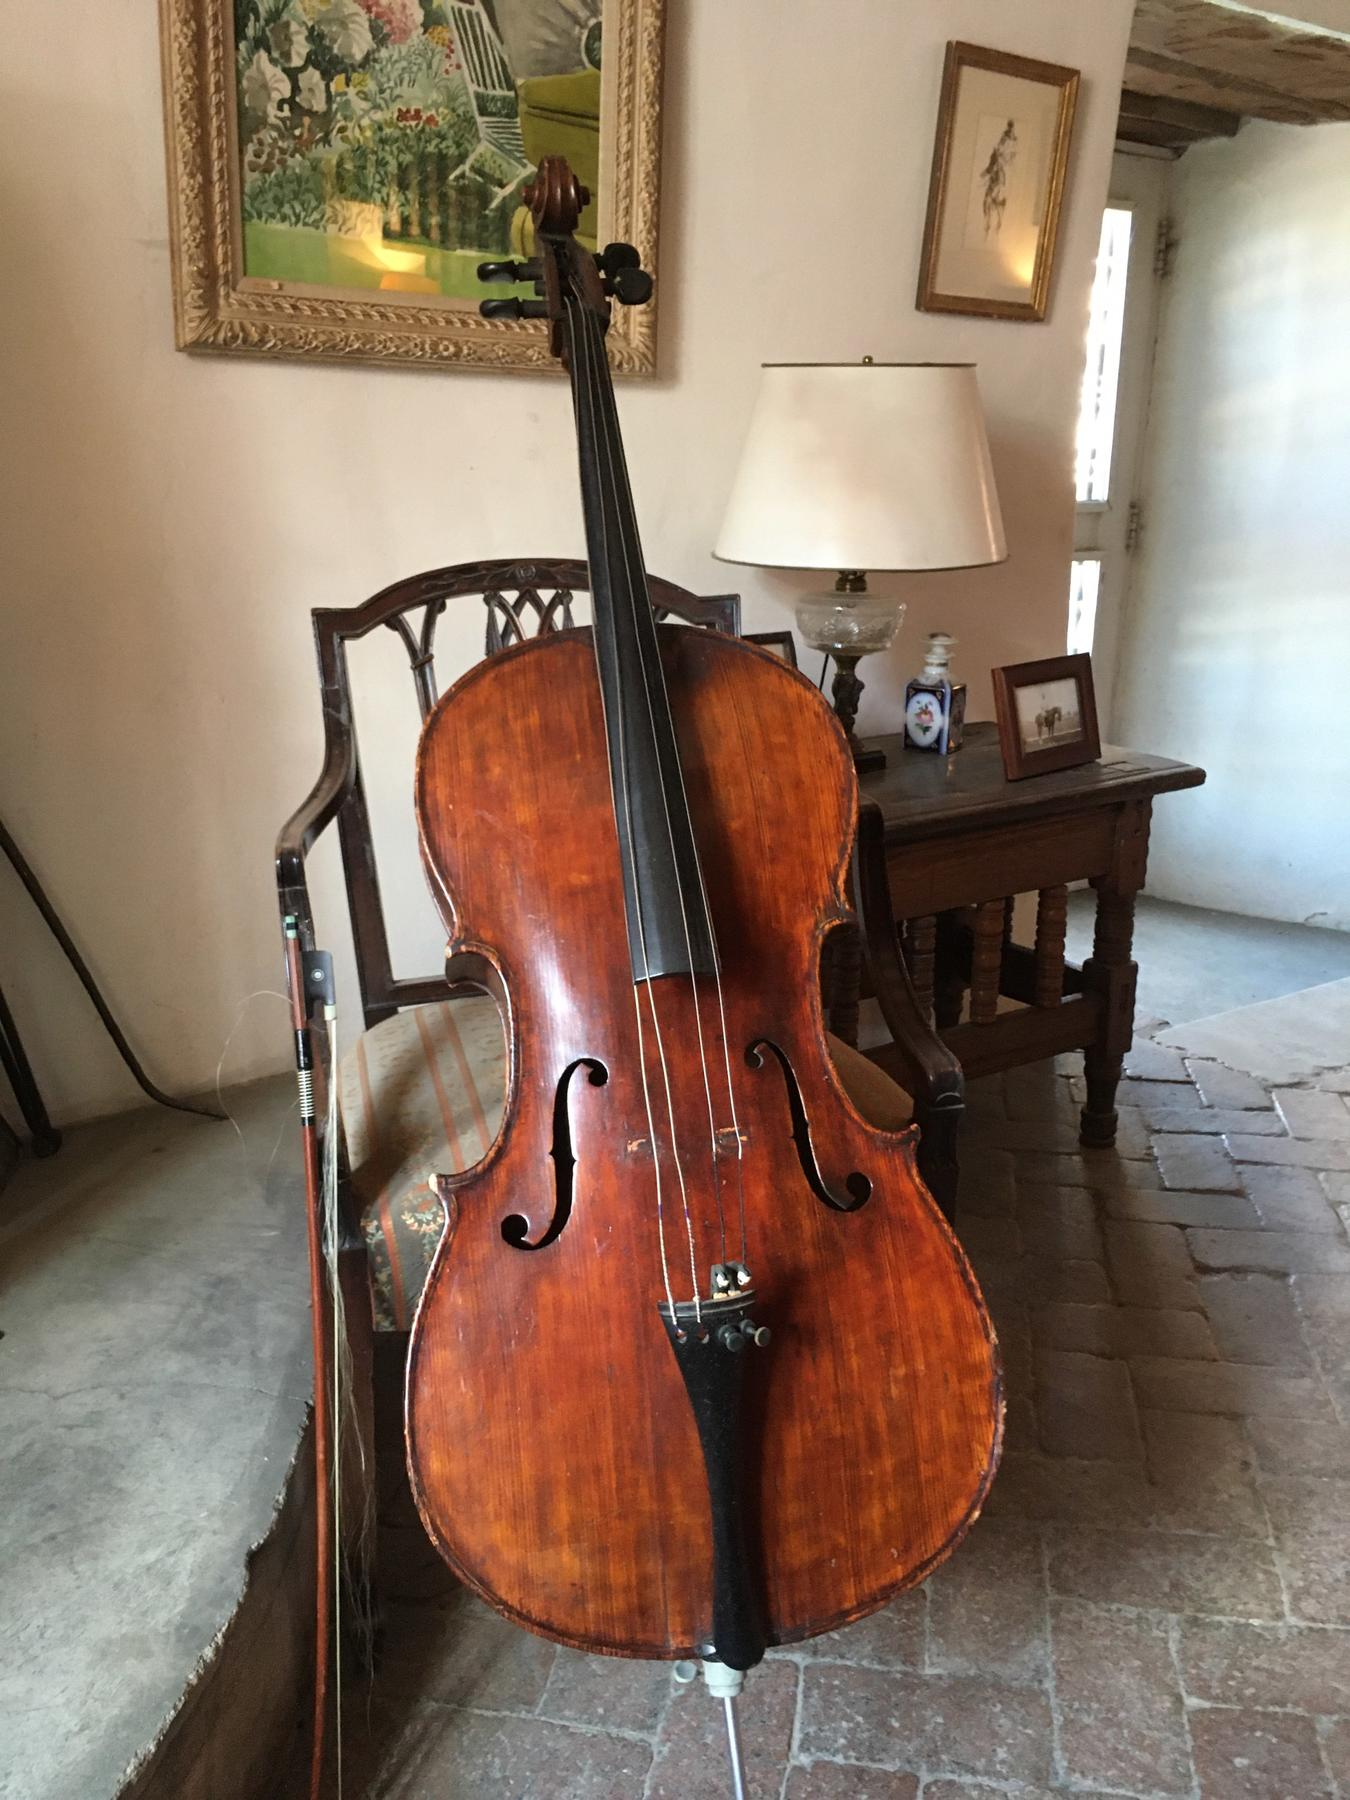 Randall Davey's Cello